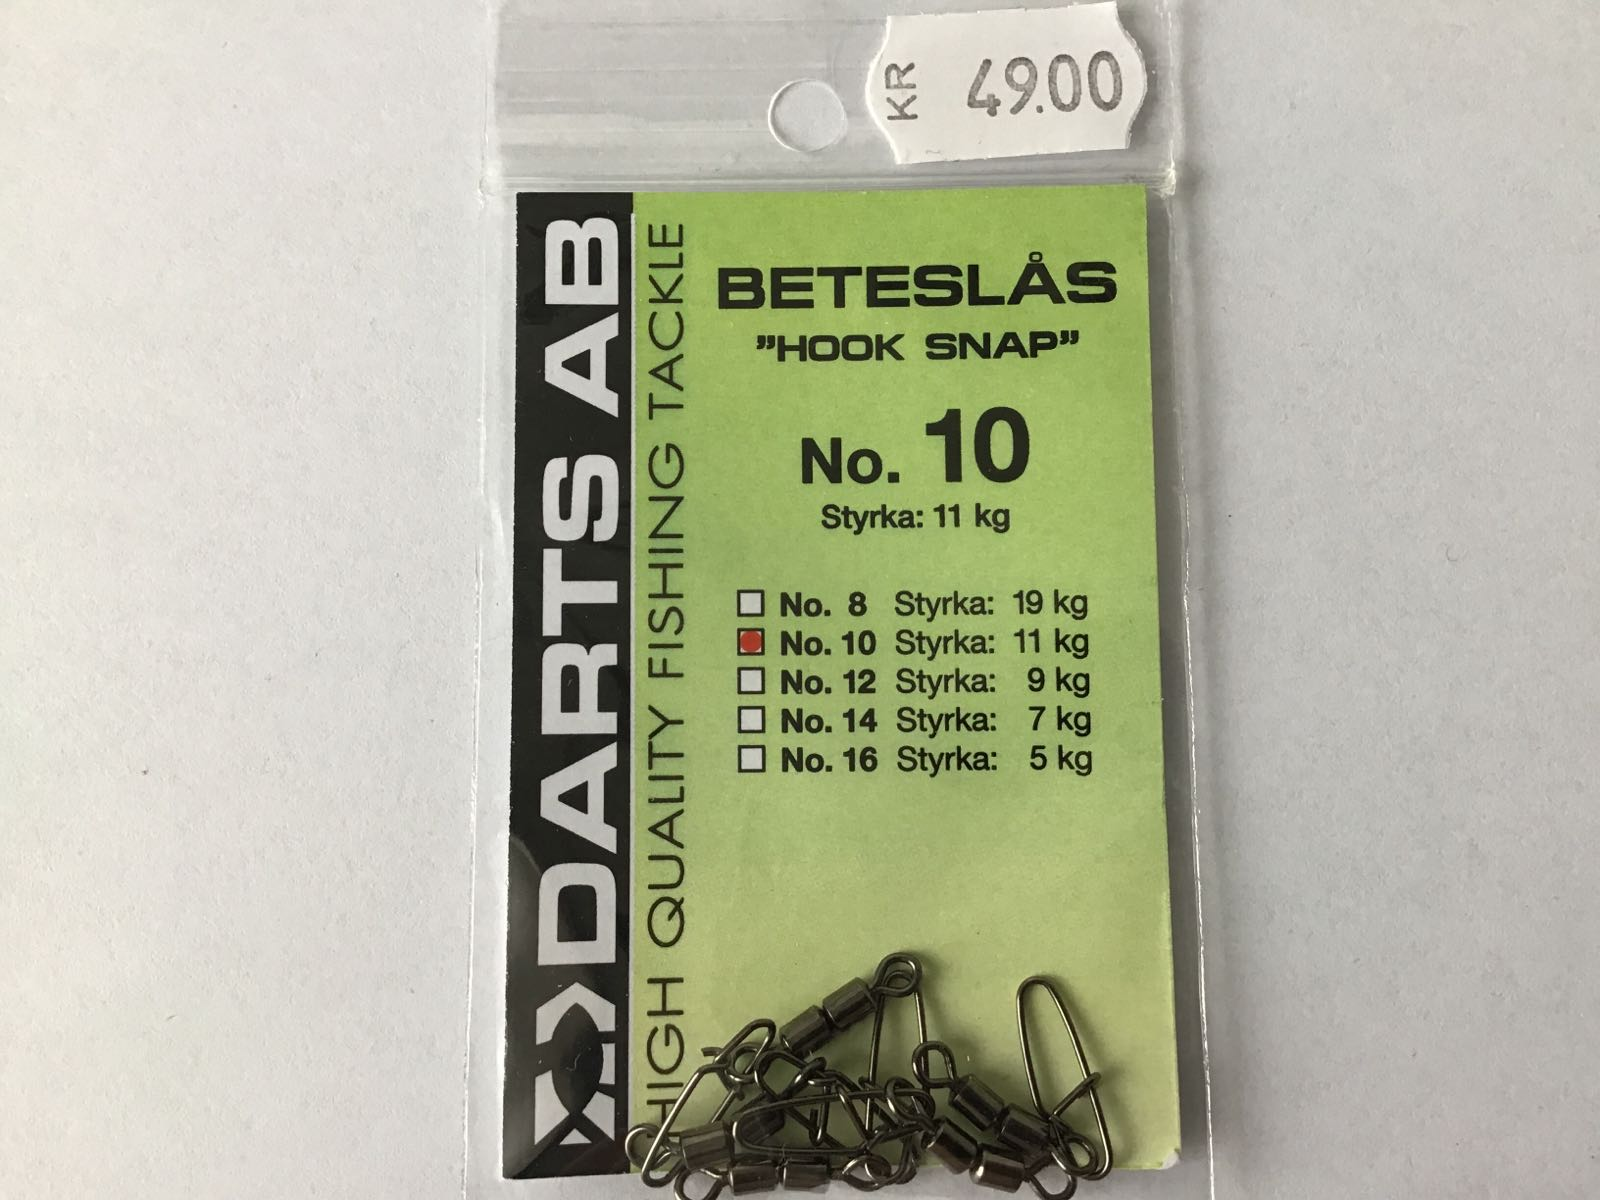 Darts beteslås hook snap no.10